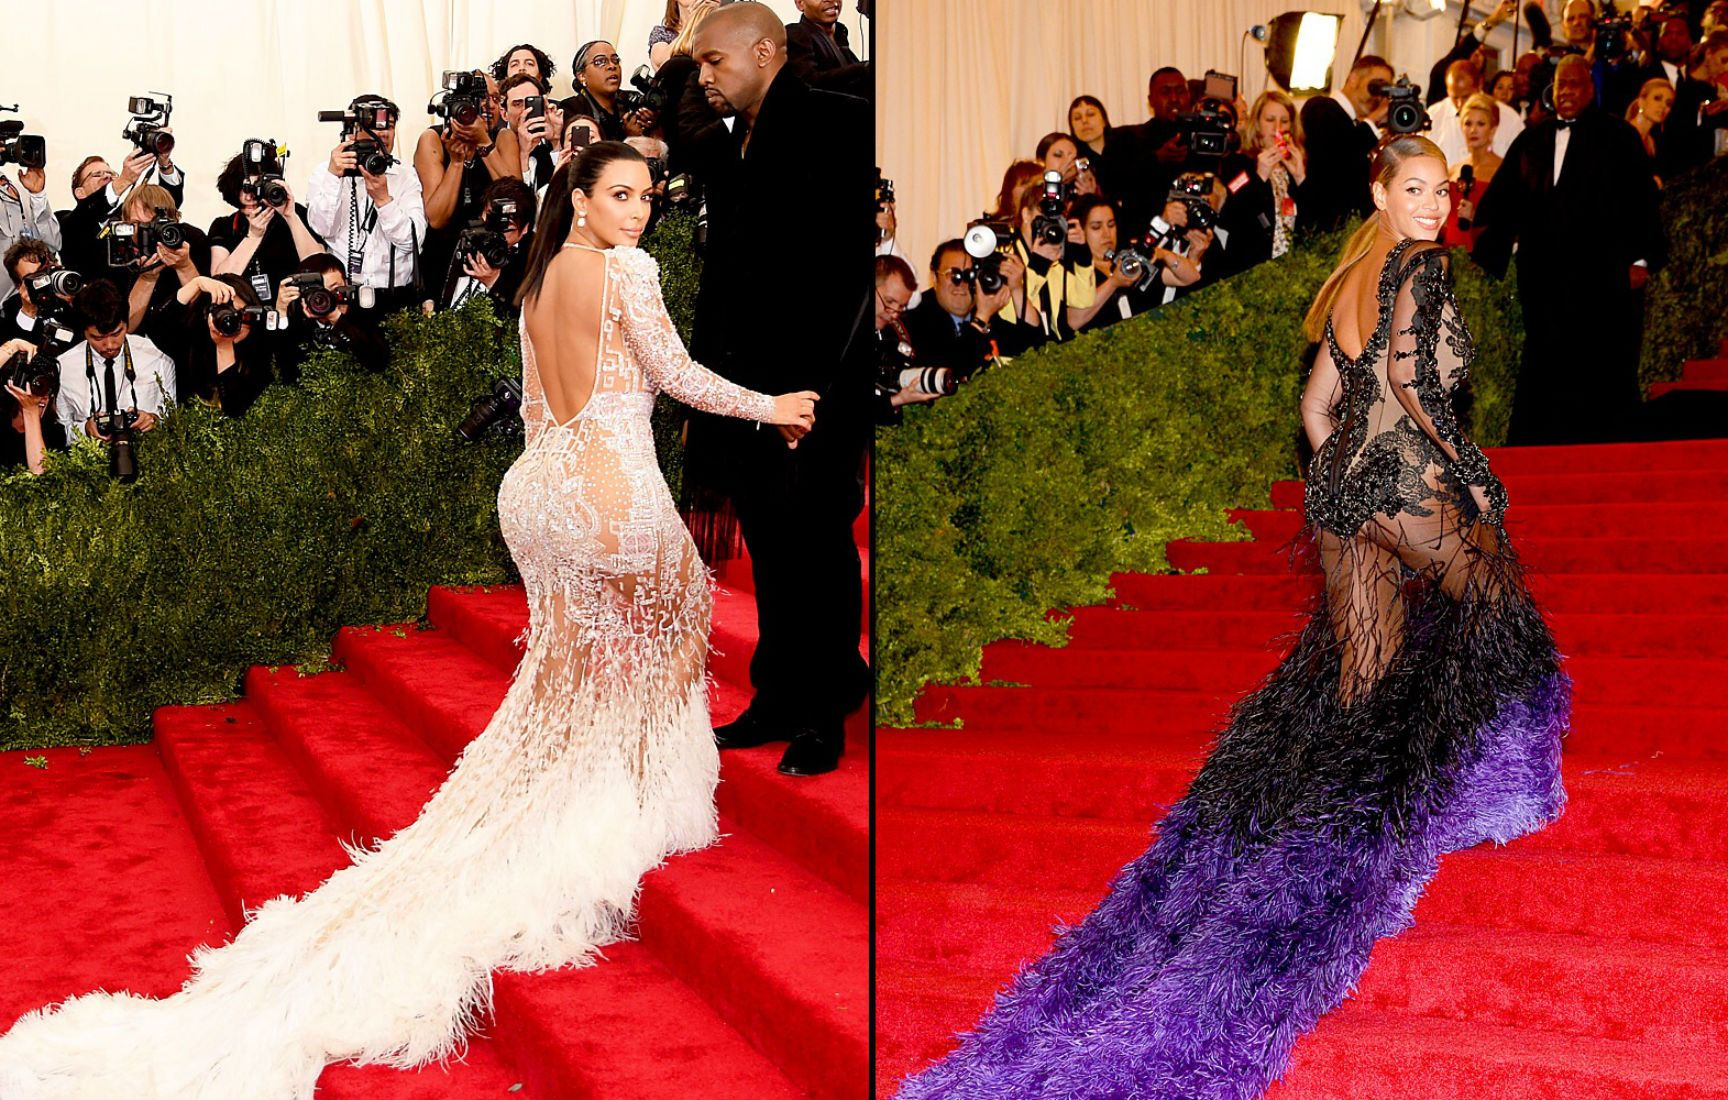 The 15 Most Revealing Red Carpet Dresses That'll Make Your Jaw Drop